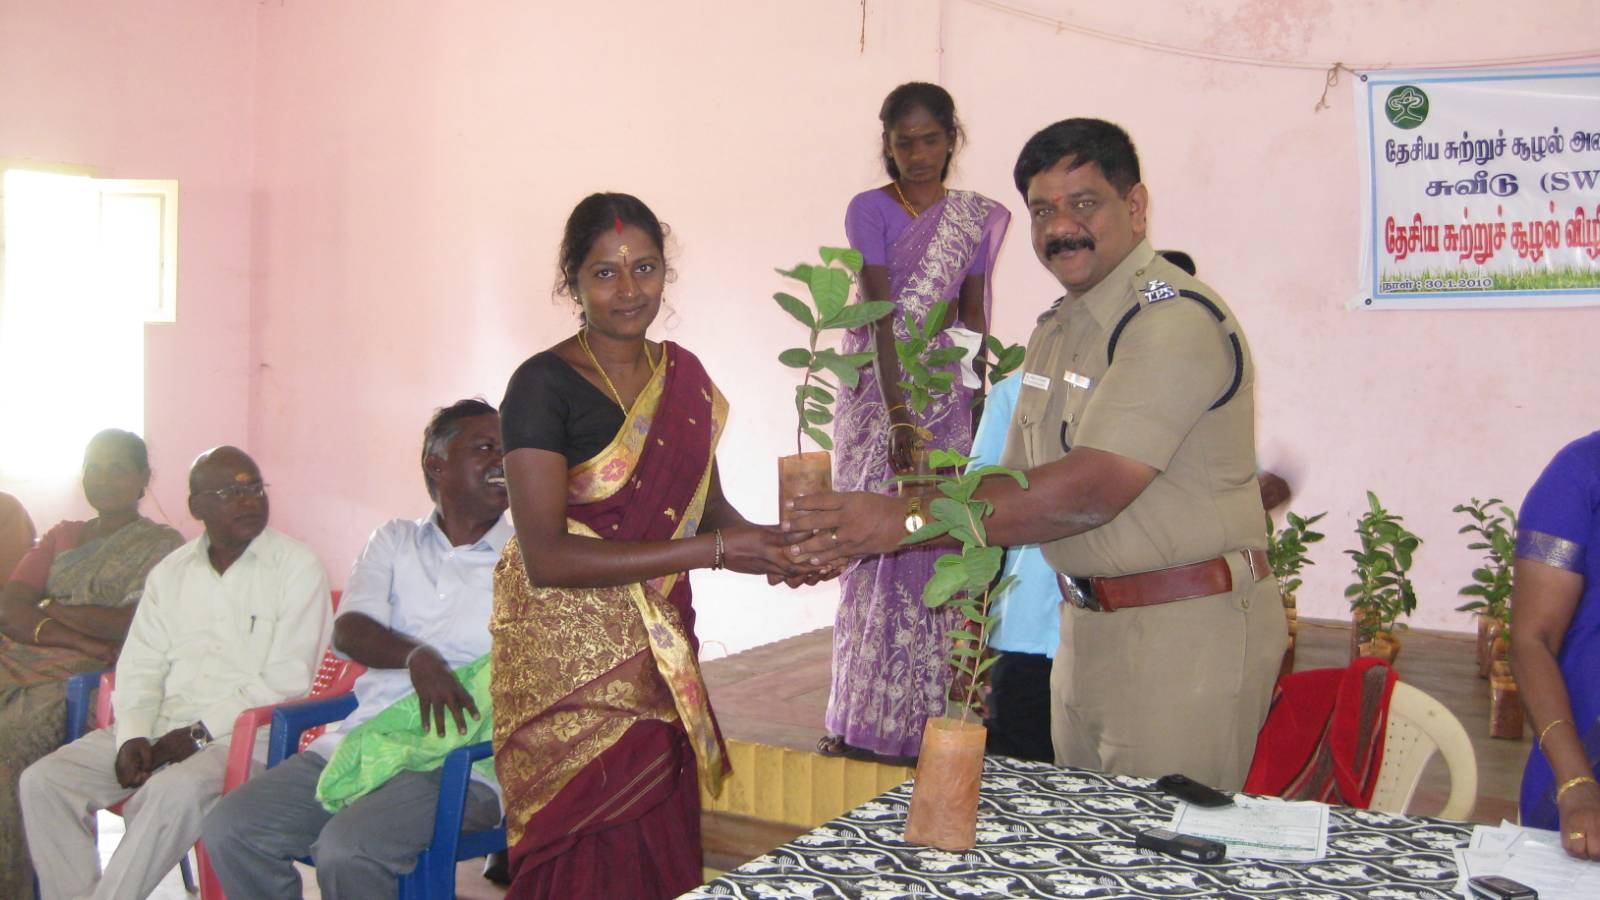 World Environmental Day programme conducted by SWEED.